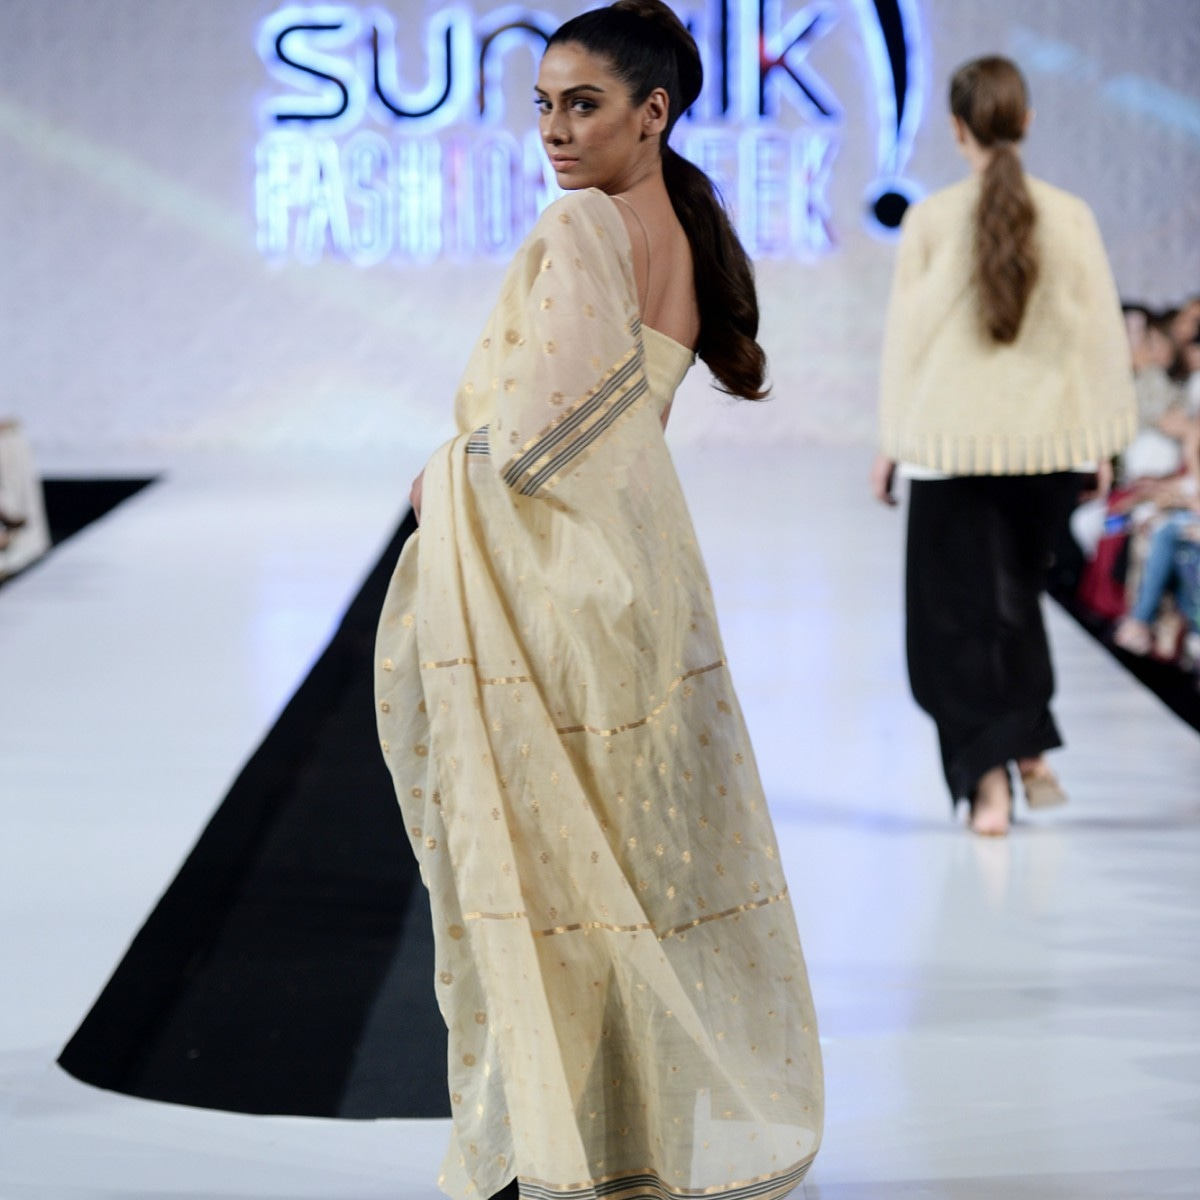 The designer came back to the ramp after a mini hiatus with a bang